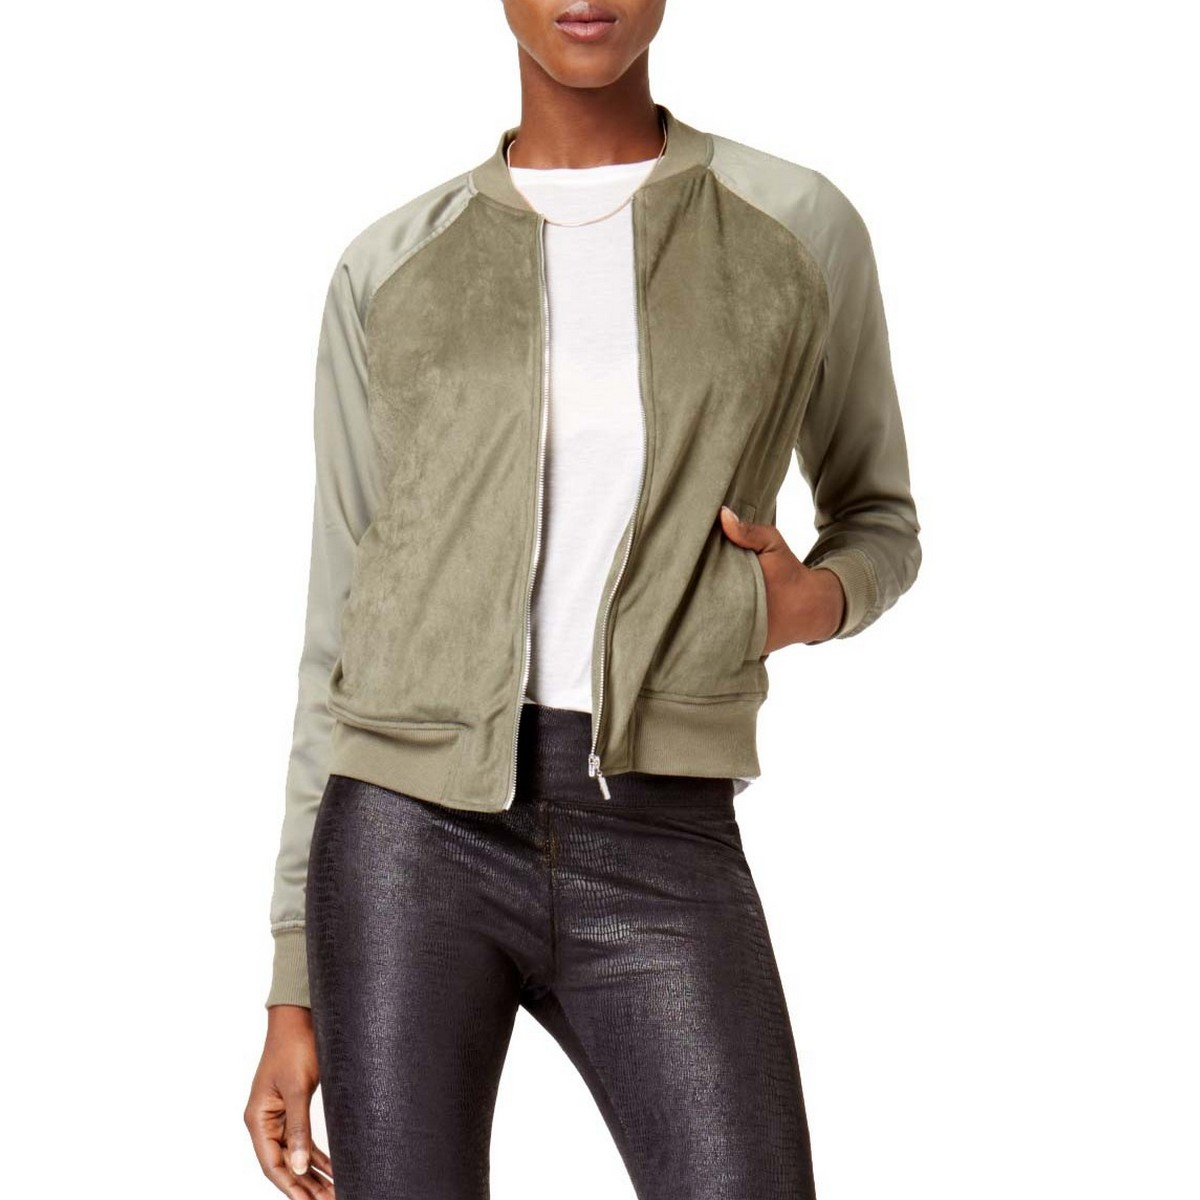 f7b226047 Details about KENSIE NEW Women's Green Faux-suede Bomber Jacket Top TEDO